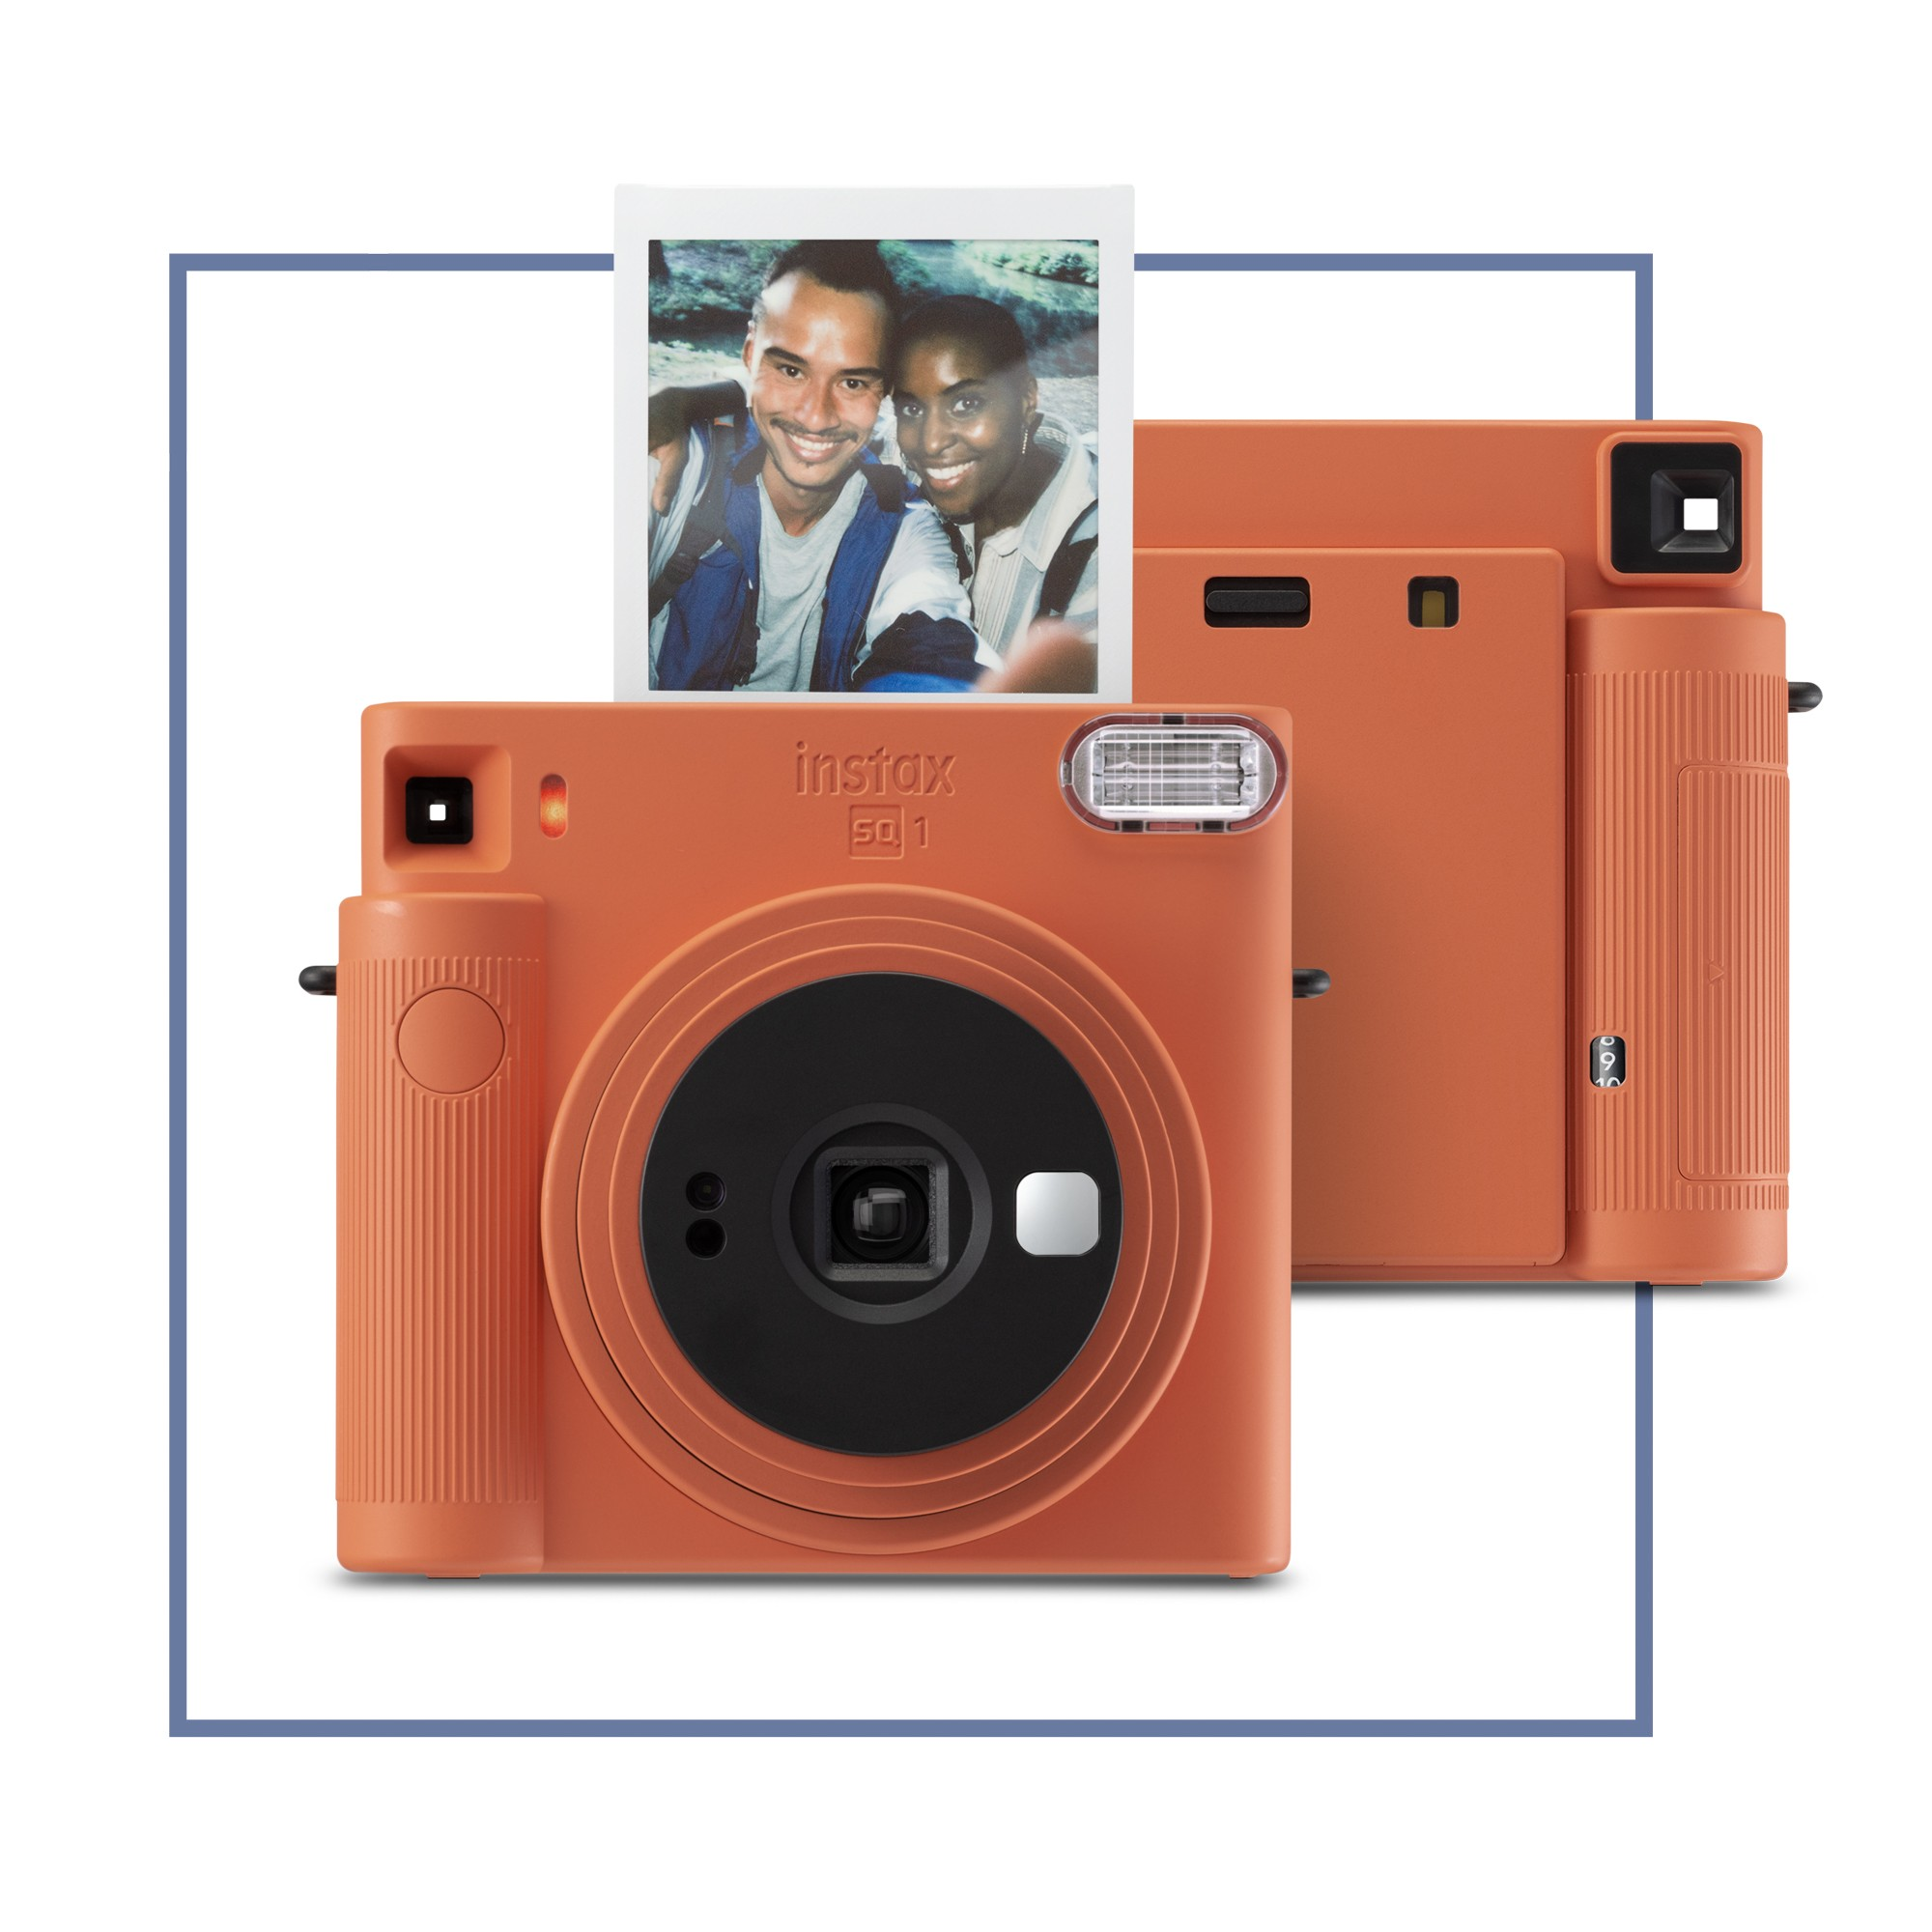 Instax Sq1 Front Back